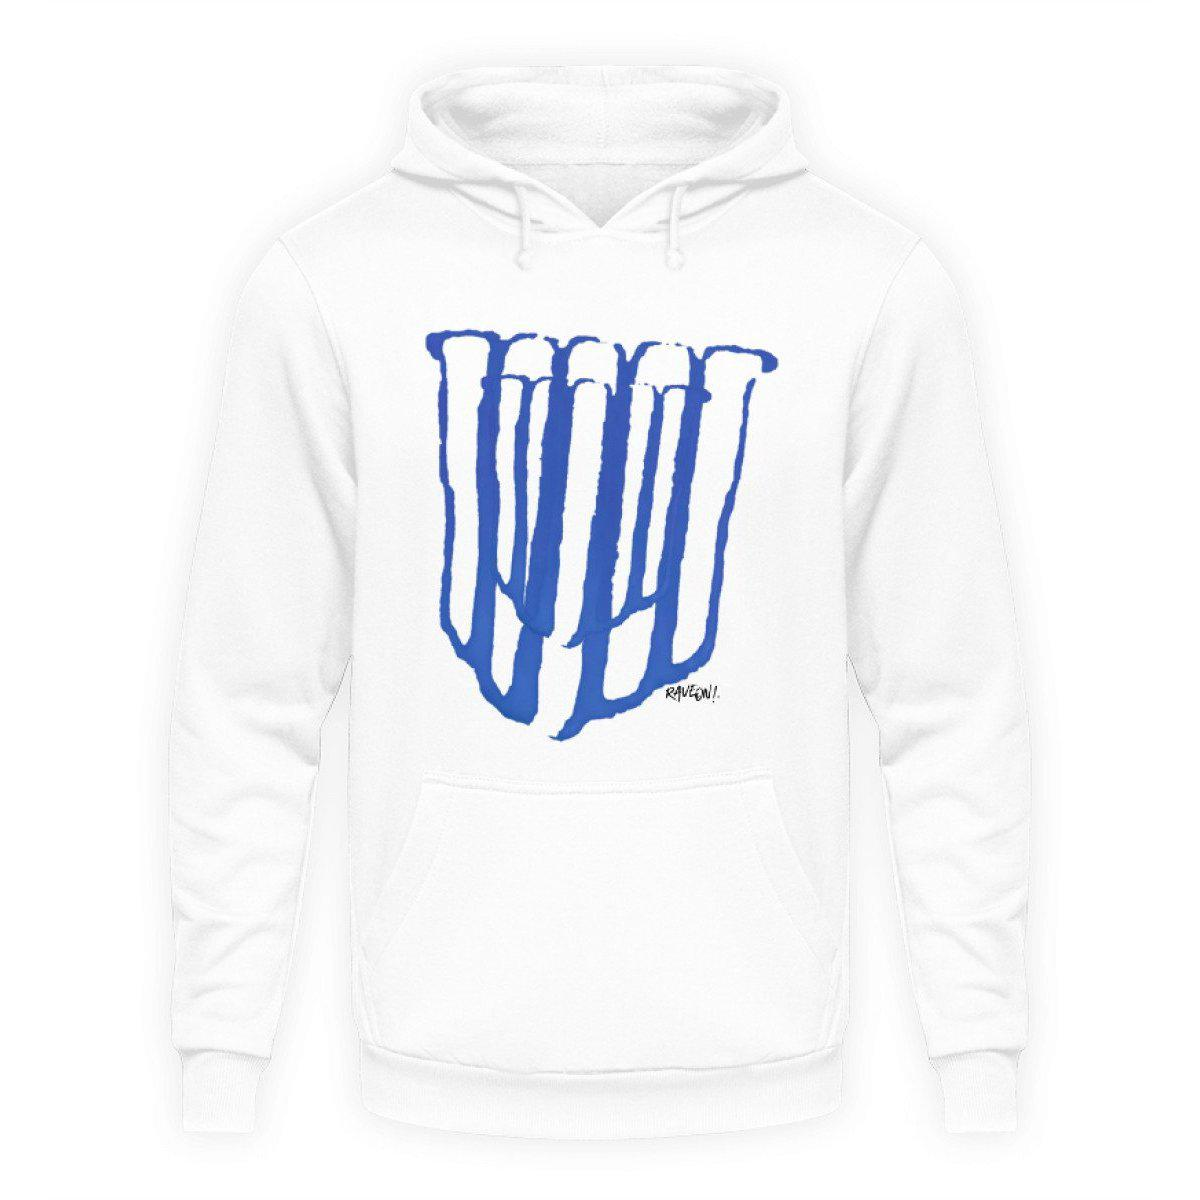 Rave On!® - Made On Blue 2k20 - Unisex Kapuzenpullover Hoodie Unisex Hoodie Arctic White / L - Rave On!® der Club & Techno Szene Shop für Coole Junge Mode Streetwear Style & Fashion Outfits + Sexy Festival 420 Stuff